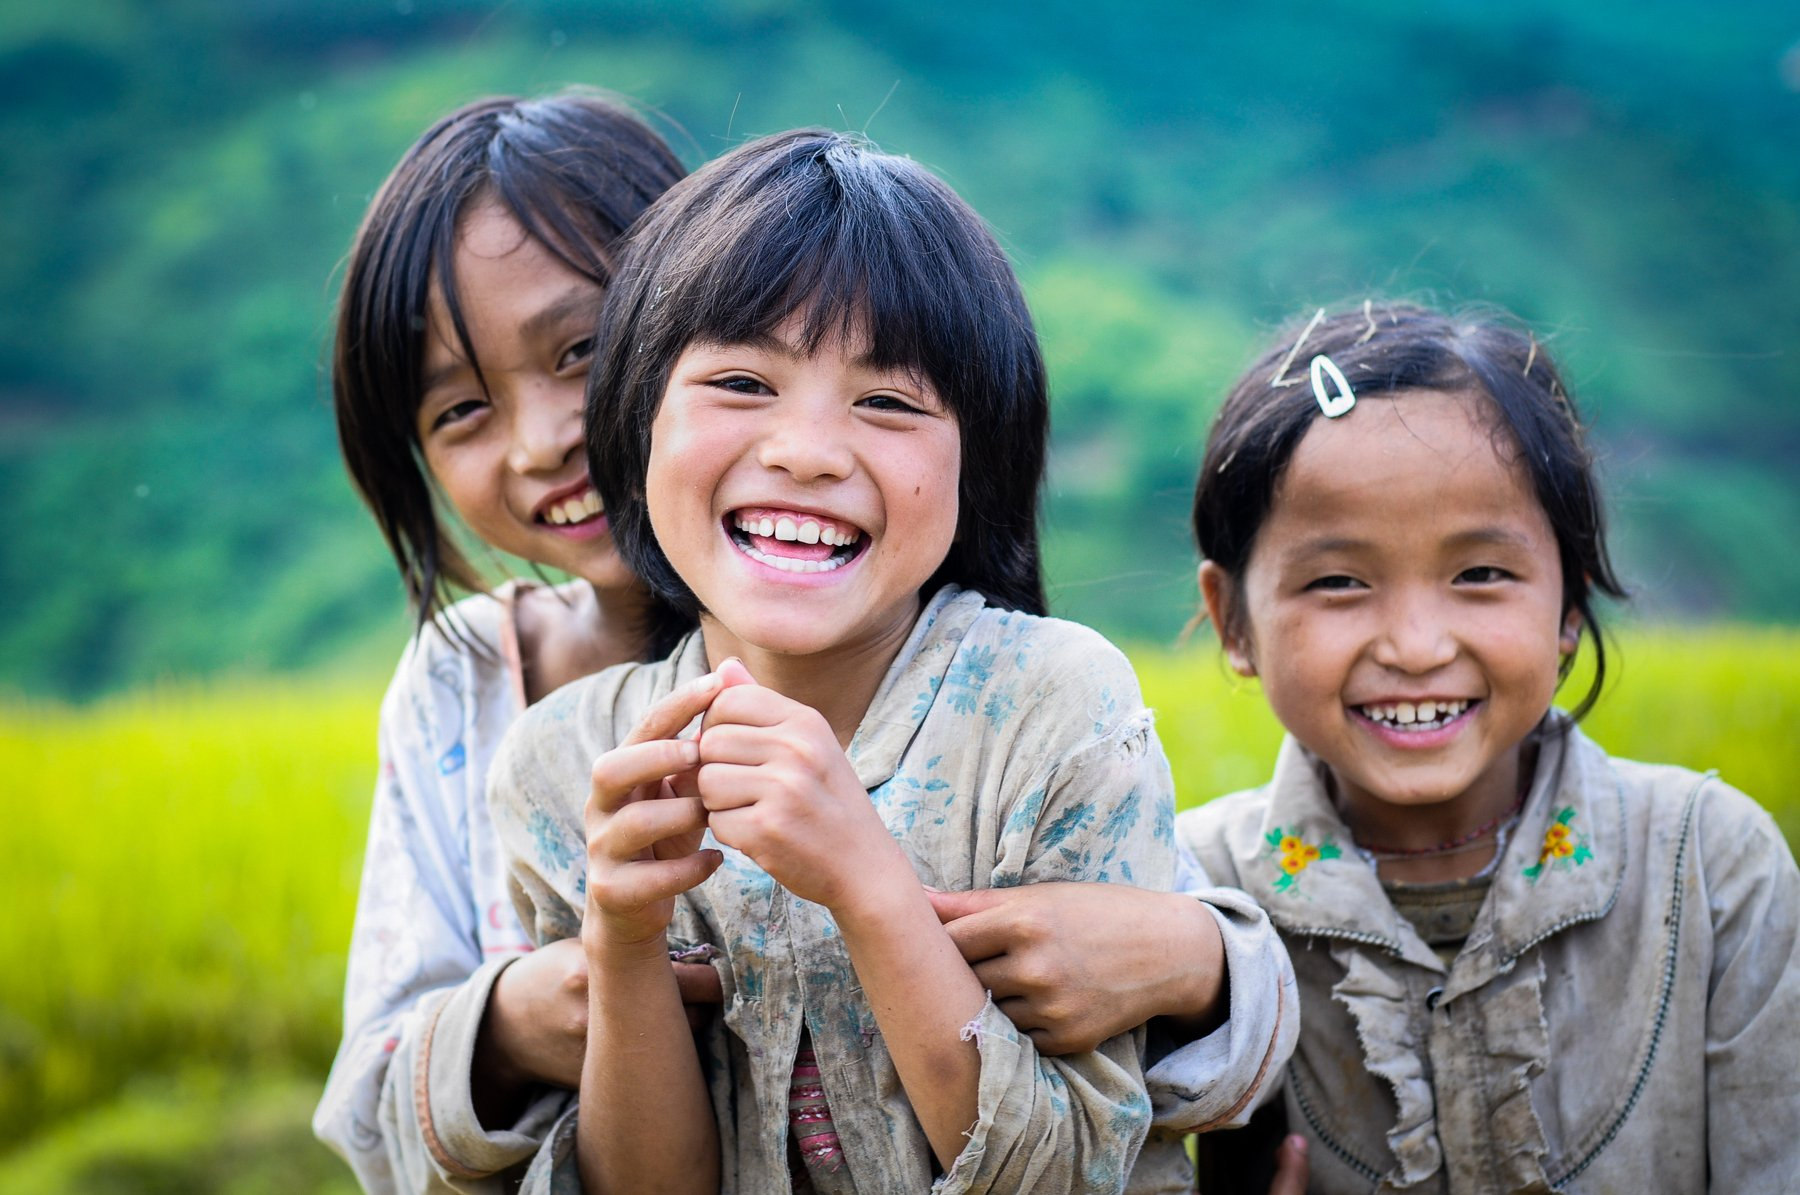 Baby, Beautiful, Child, Cute, Girl, Happy, Innocent, Kids, Lovely, Nation, Northwest of Vietnam, Poor, Smile, South east asia, Teeth, Trungducphoto, Nguyen Trung Duc